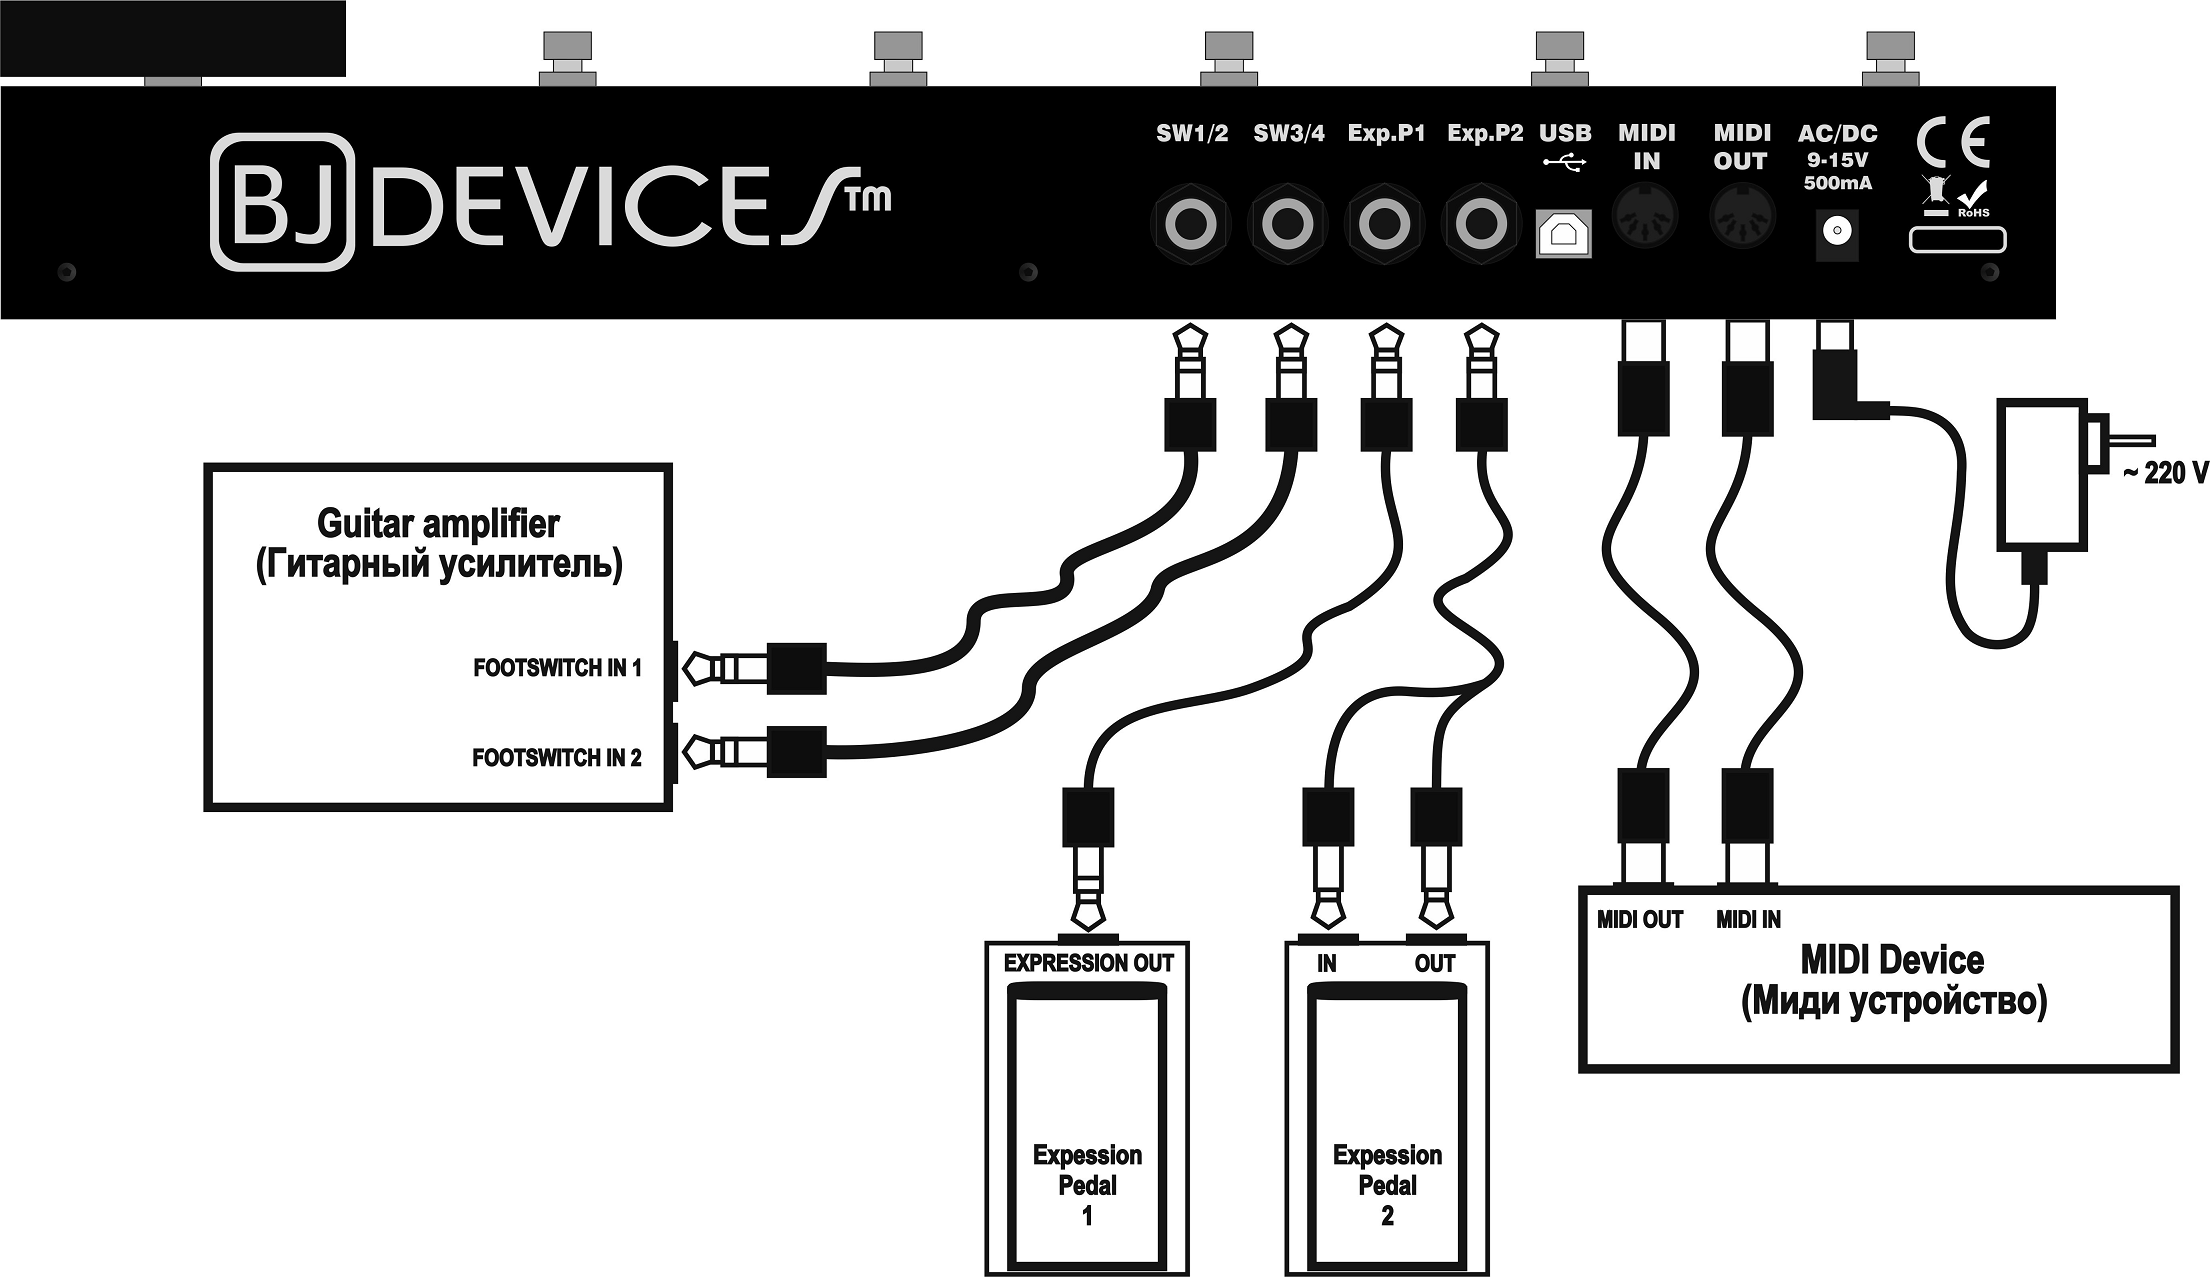 user_guide [BJ Devices Wiki]